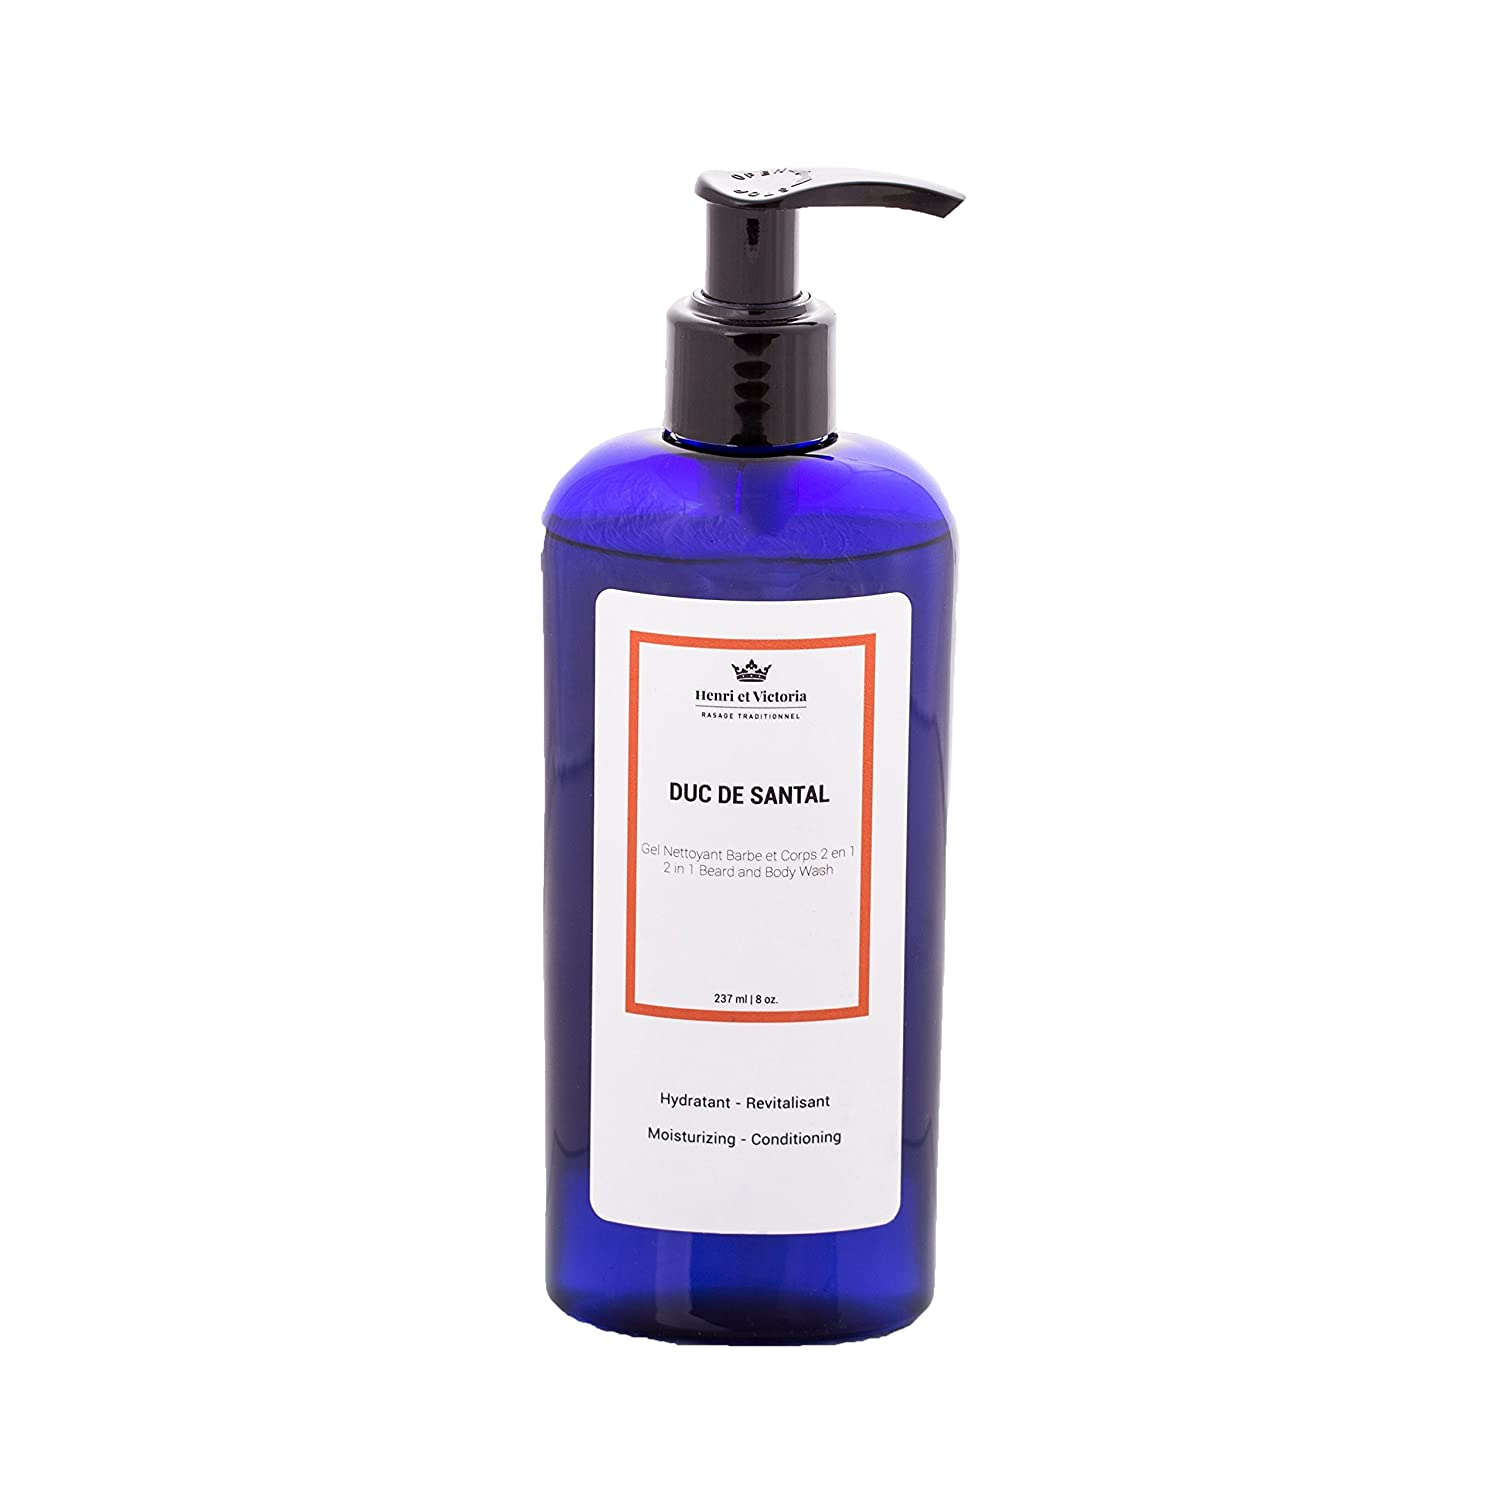 Duc de Santal Beard Wash Body Wash For Men | Hand Made in CANADA by Henri et Victoria | Moisturizing and soothing | 8oz Henri et Victoria inc